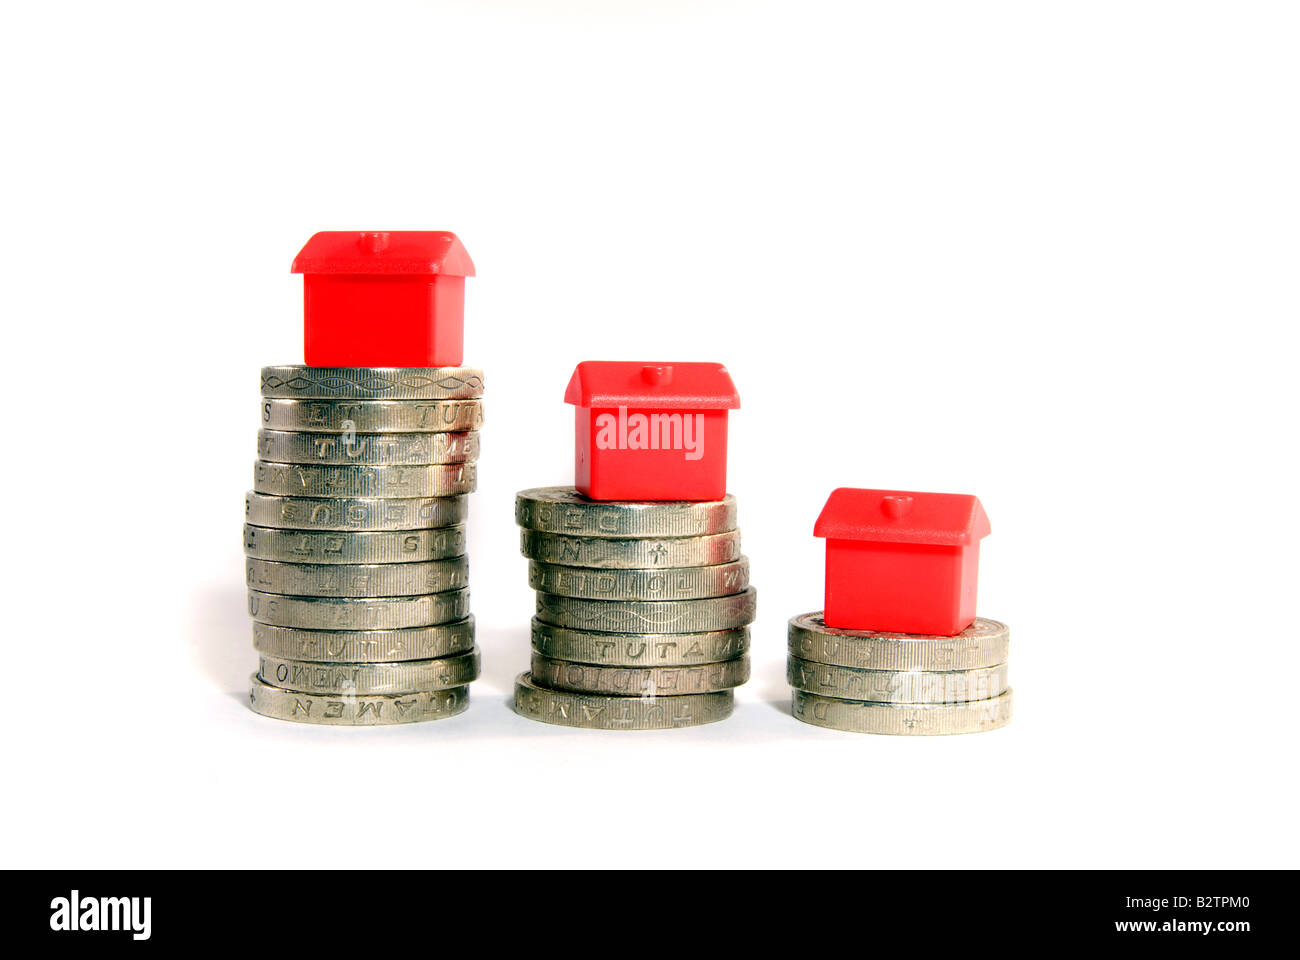 Small red model houses stacked on top of piles of coins isolated objects Property ladder Housing market credit crunch - Stock Image